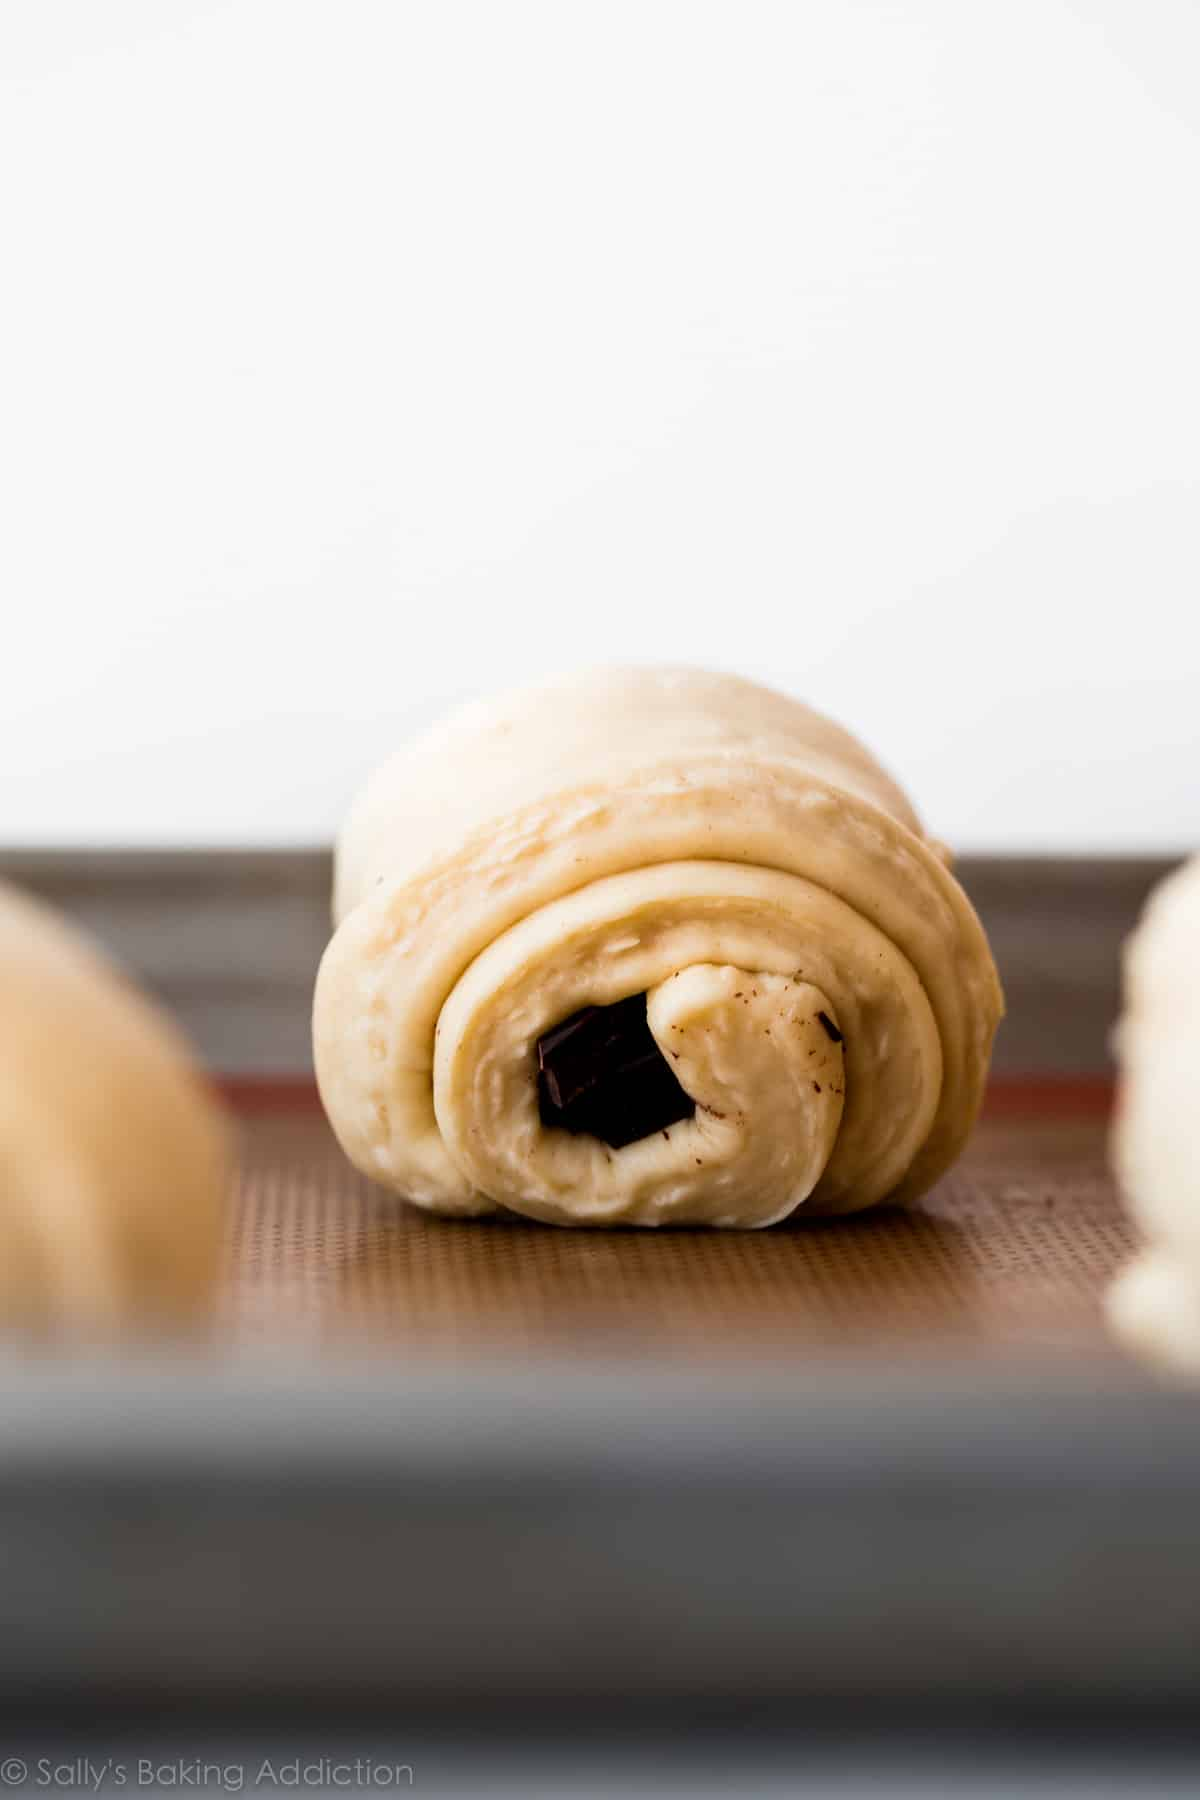 How to make chocolate croissants (Pain au Chocolat) on sallysbakingaddiction.com